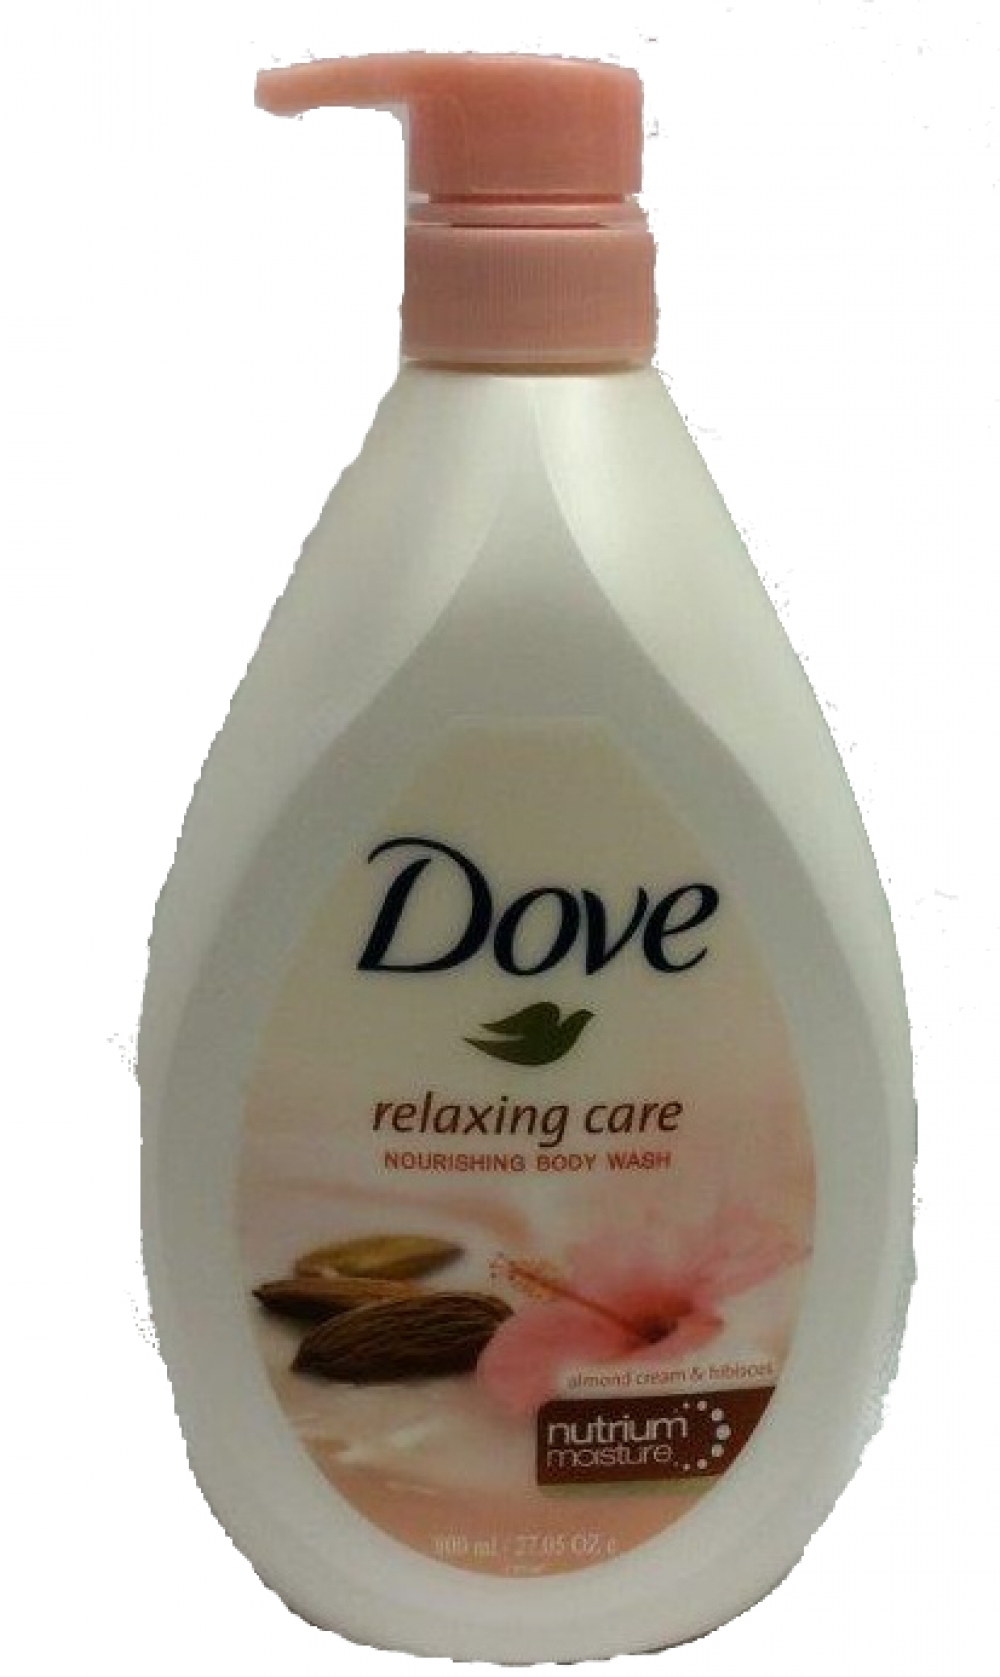 Dove Relaxing Care Nourishing Body Wash Pump With Almond Cream And Hibiscus 27 05 Ounce Soapsplash Buy Discounted Brand Name Household Health And Beauty Products